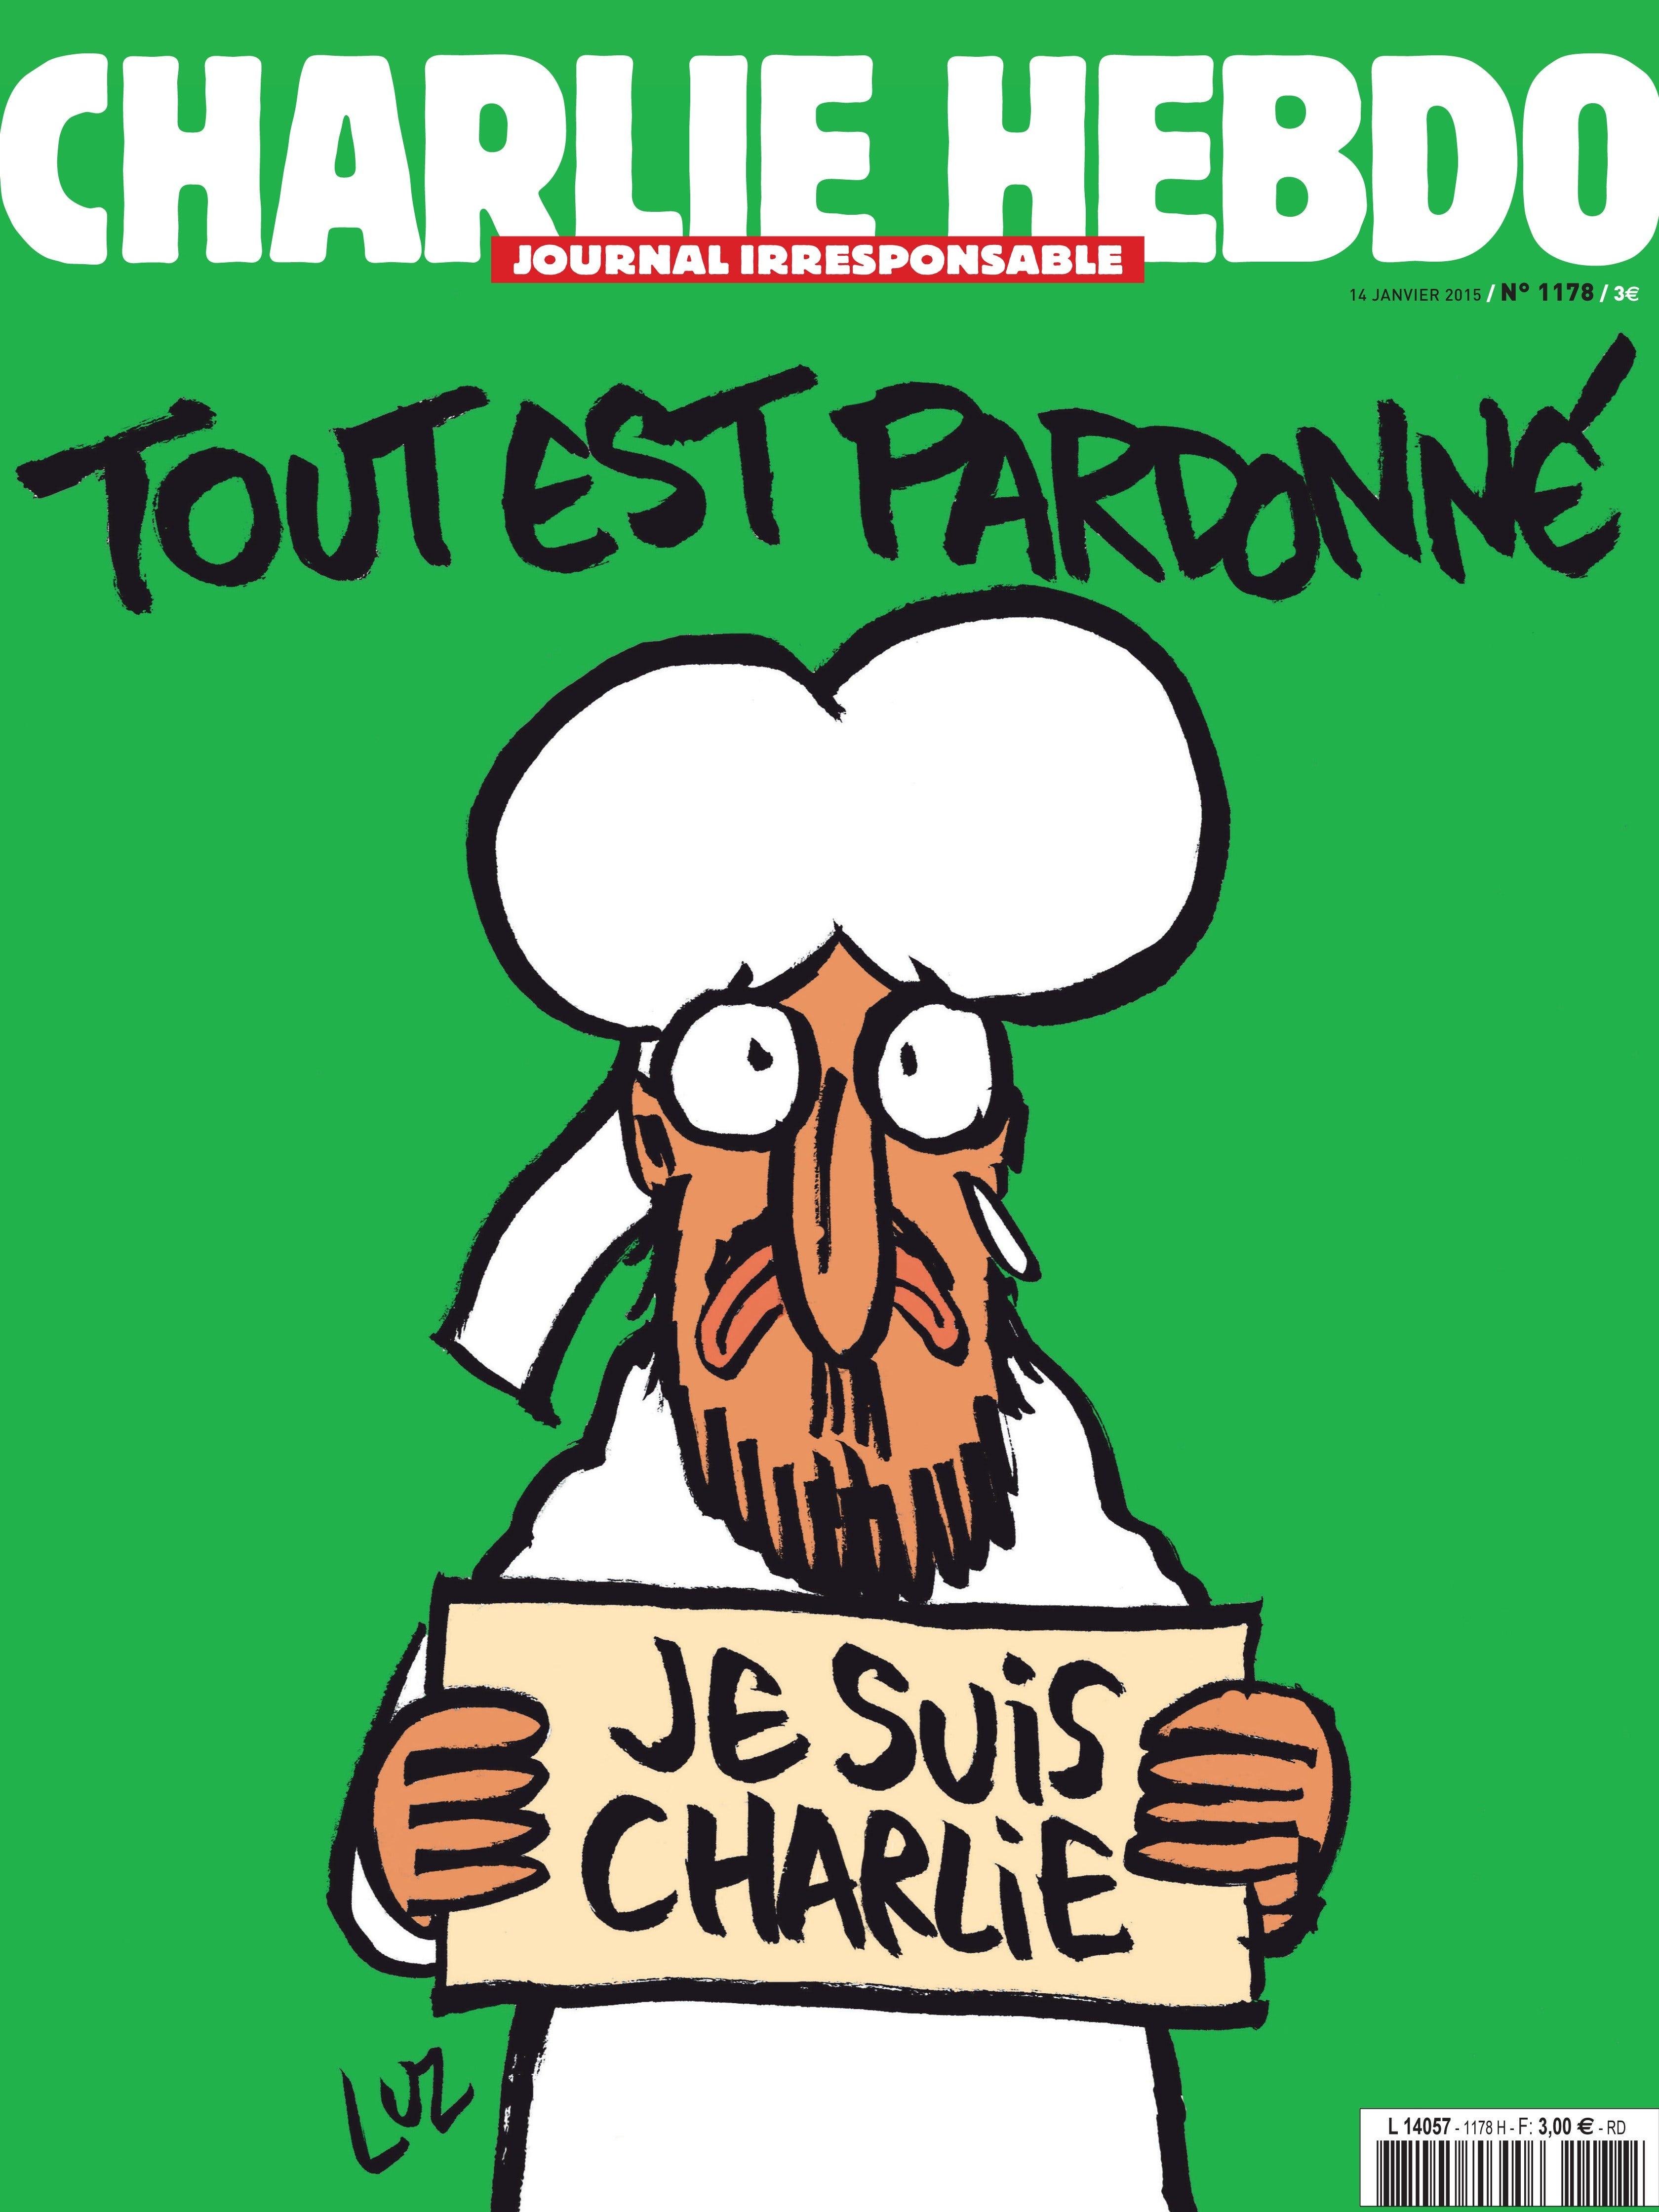 New Charlie Hebdo Cover Released